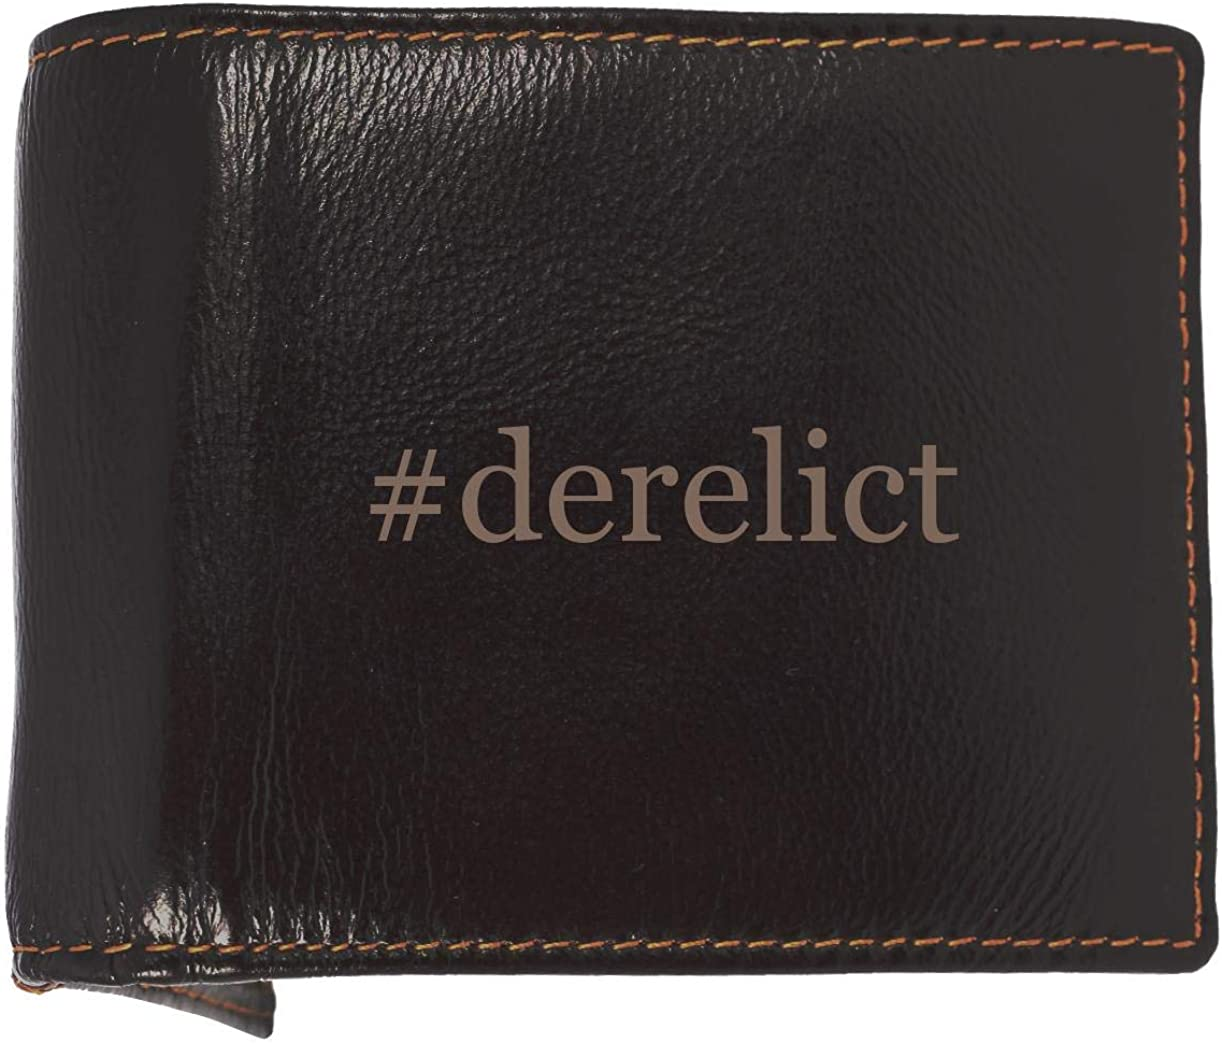 #Derelict - Soft Hashtag Cowhide Genuine Engraved Bifold Leather Wallet